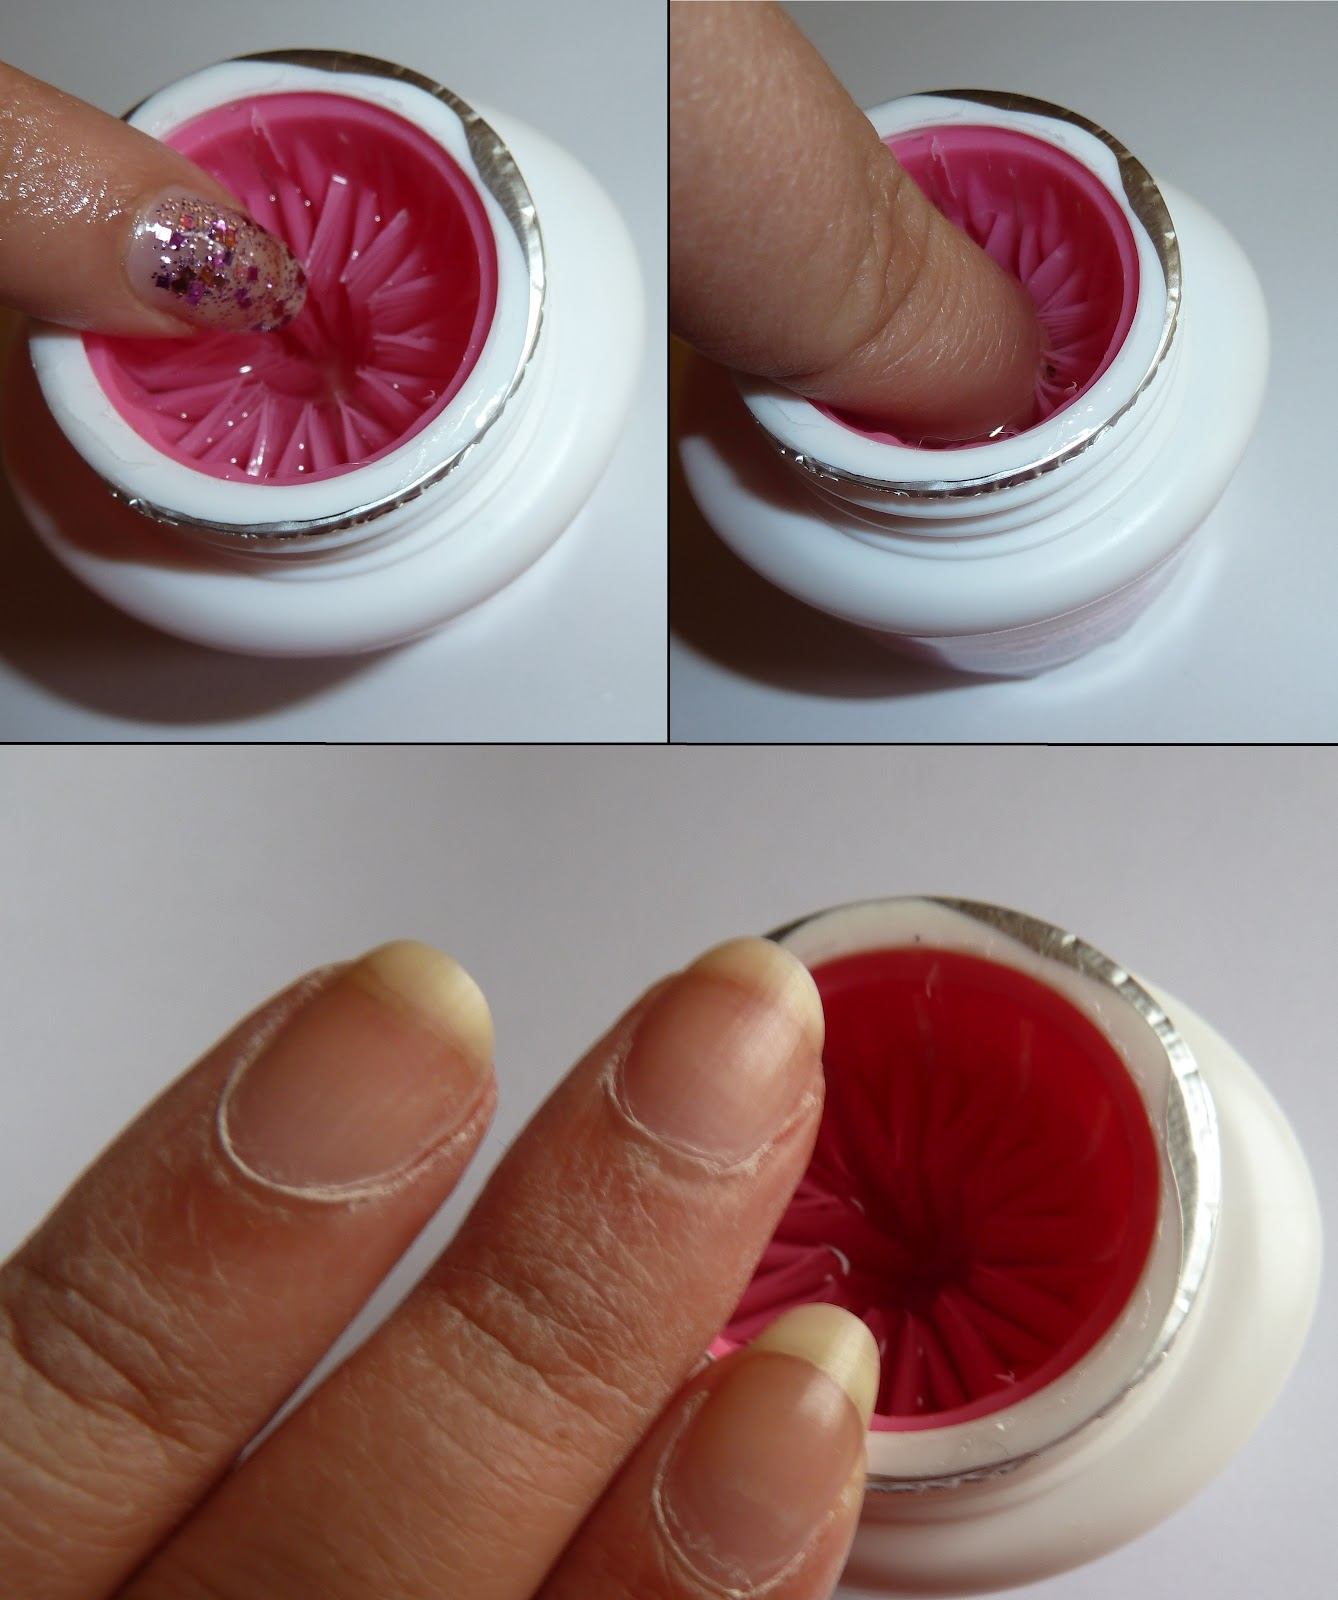 NailsByStephanie: Quick Tip: Remove Glitter Polish in Secondes!